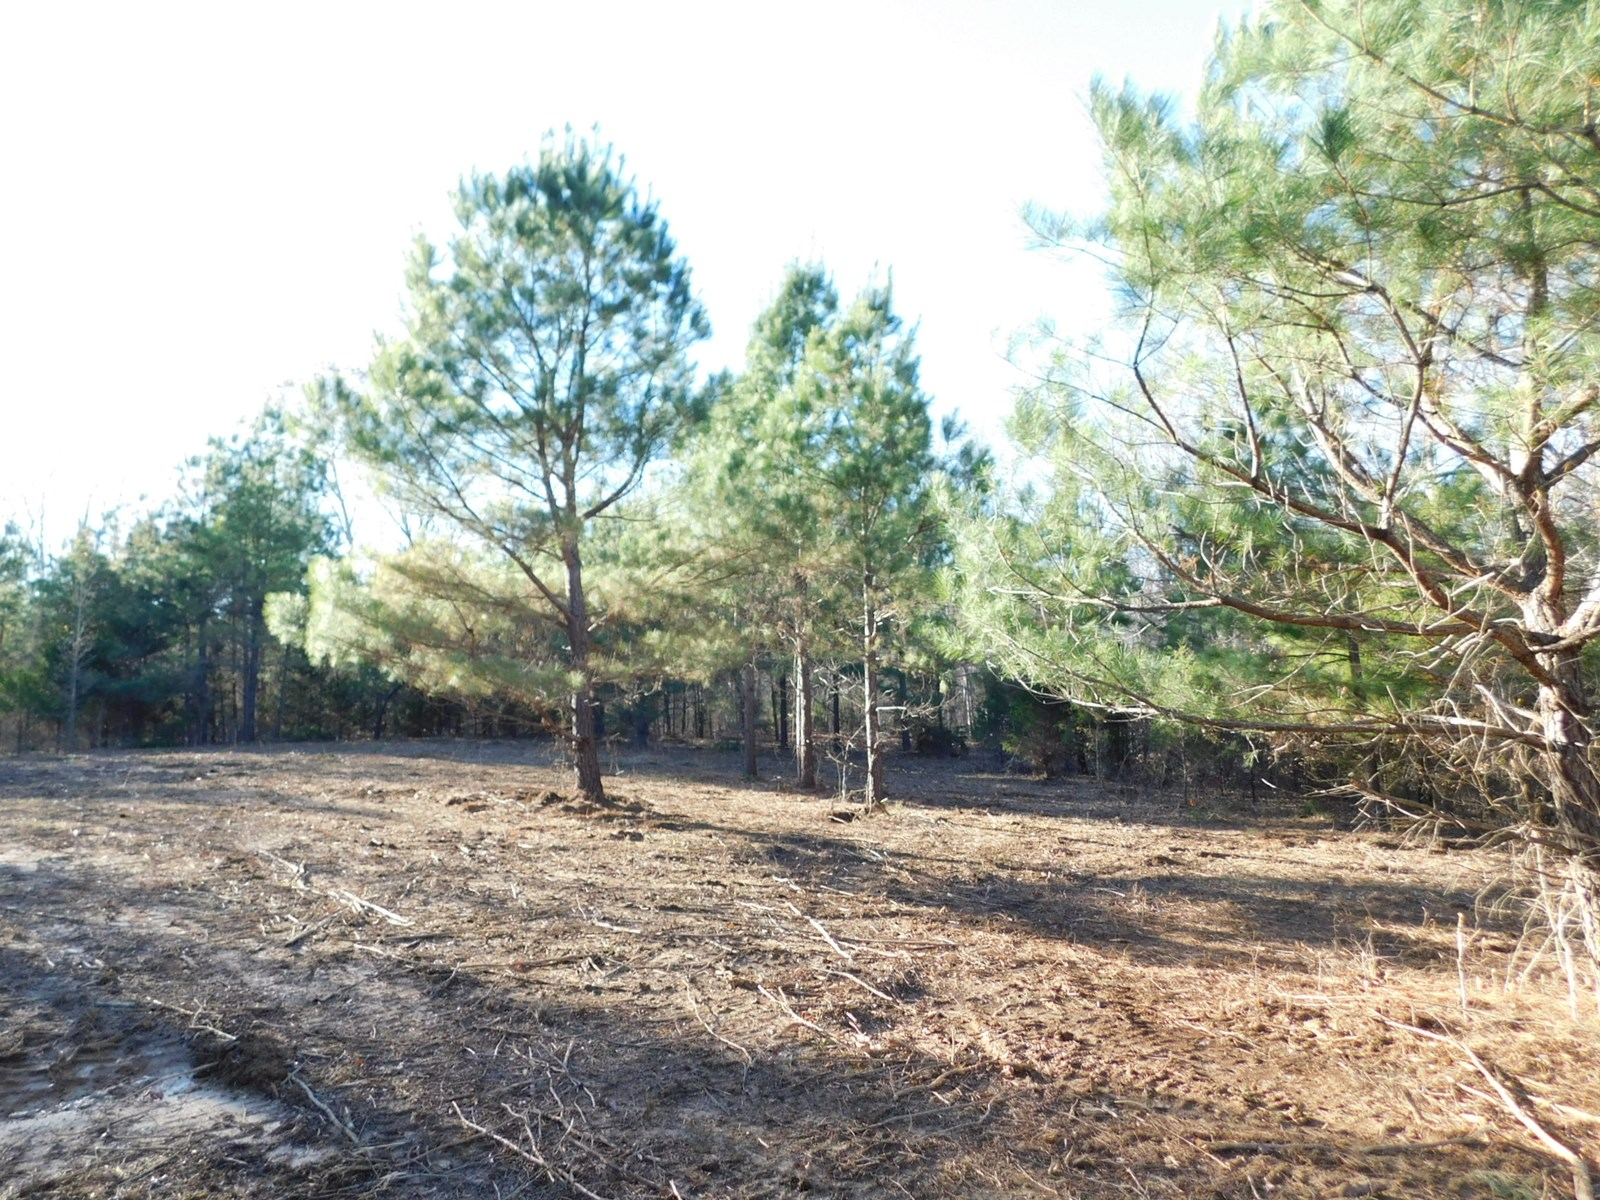 LAND FOR SALE IN TN NEAR SHILOH NATIONAL MILITARY PARK